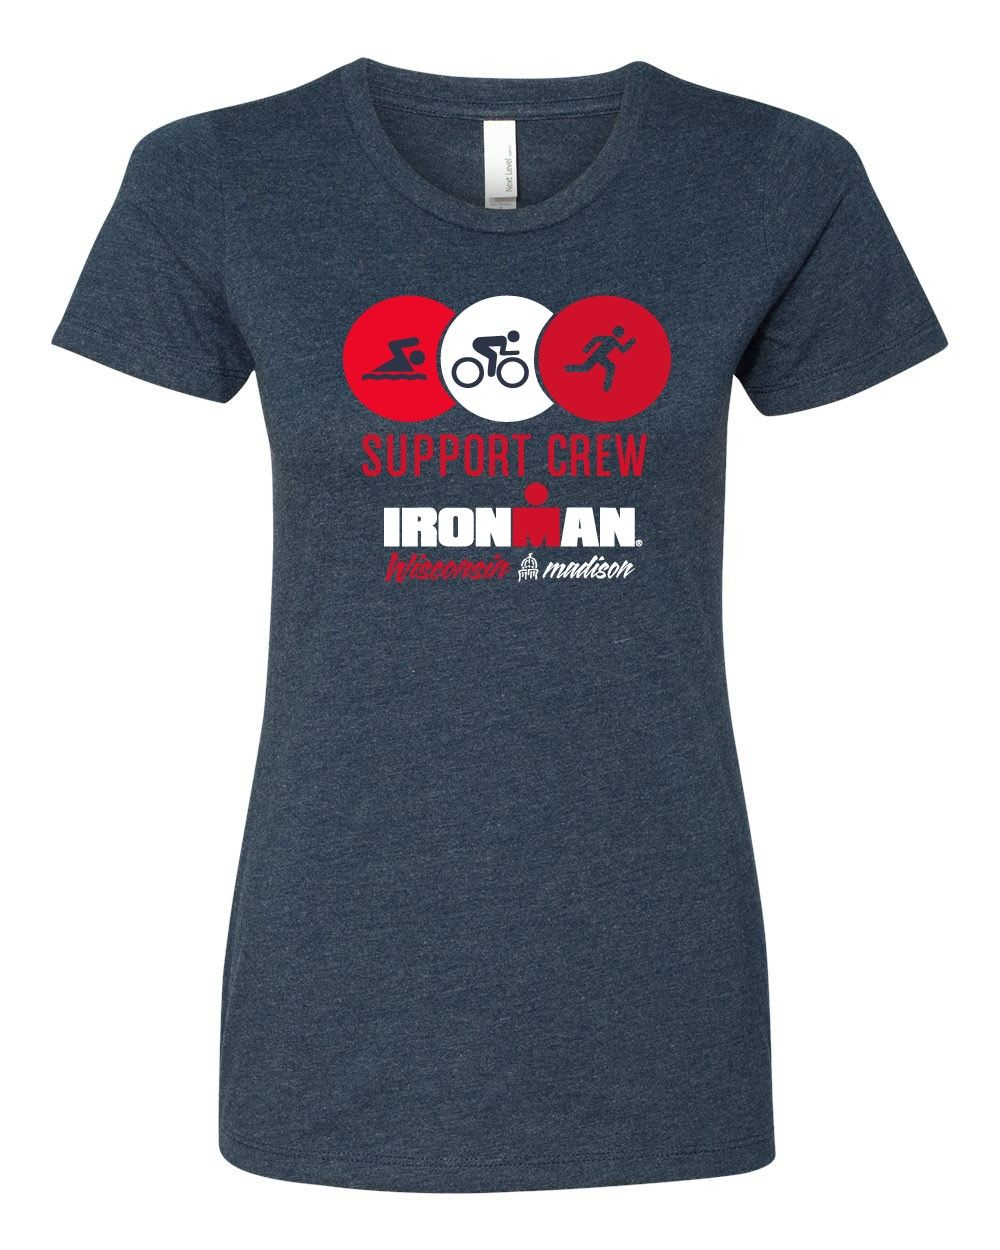 c97a638de customizable Ironman T-Shirts...In 140.6 miles... | Triathlon | Iron man, Ironman  triathlon tattoo, Triathlon tattoo